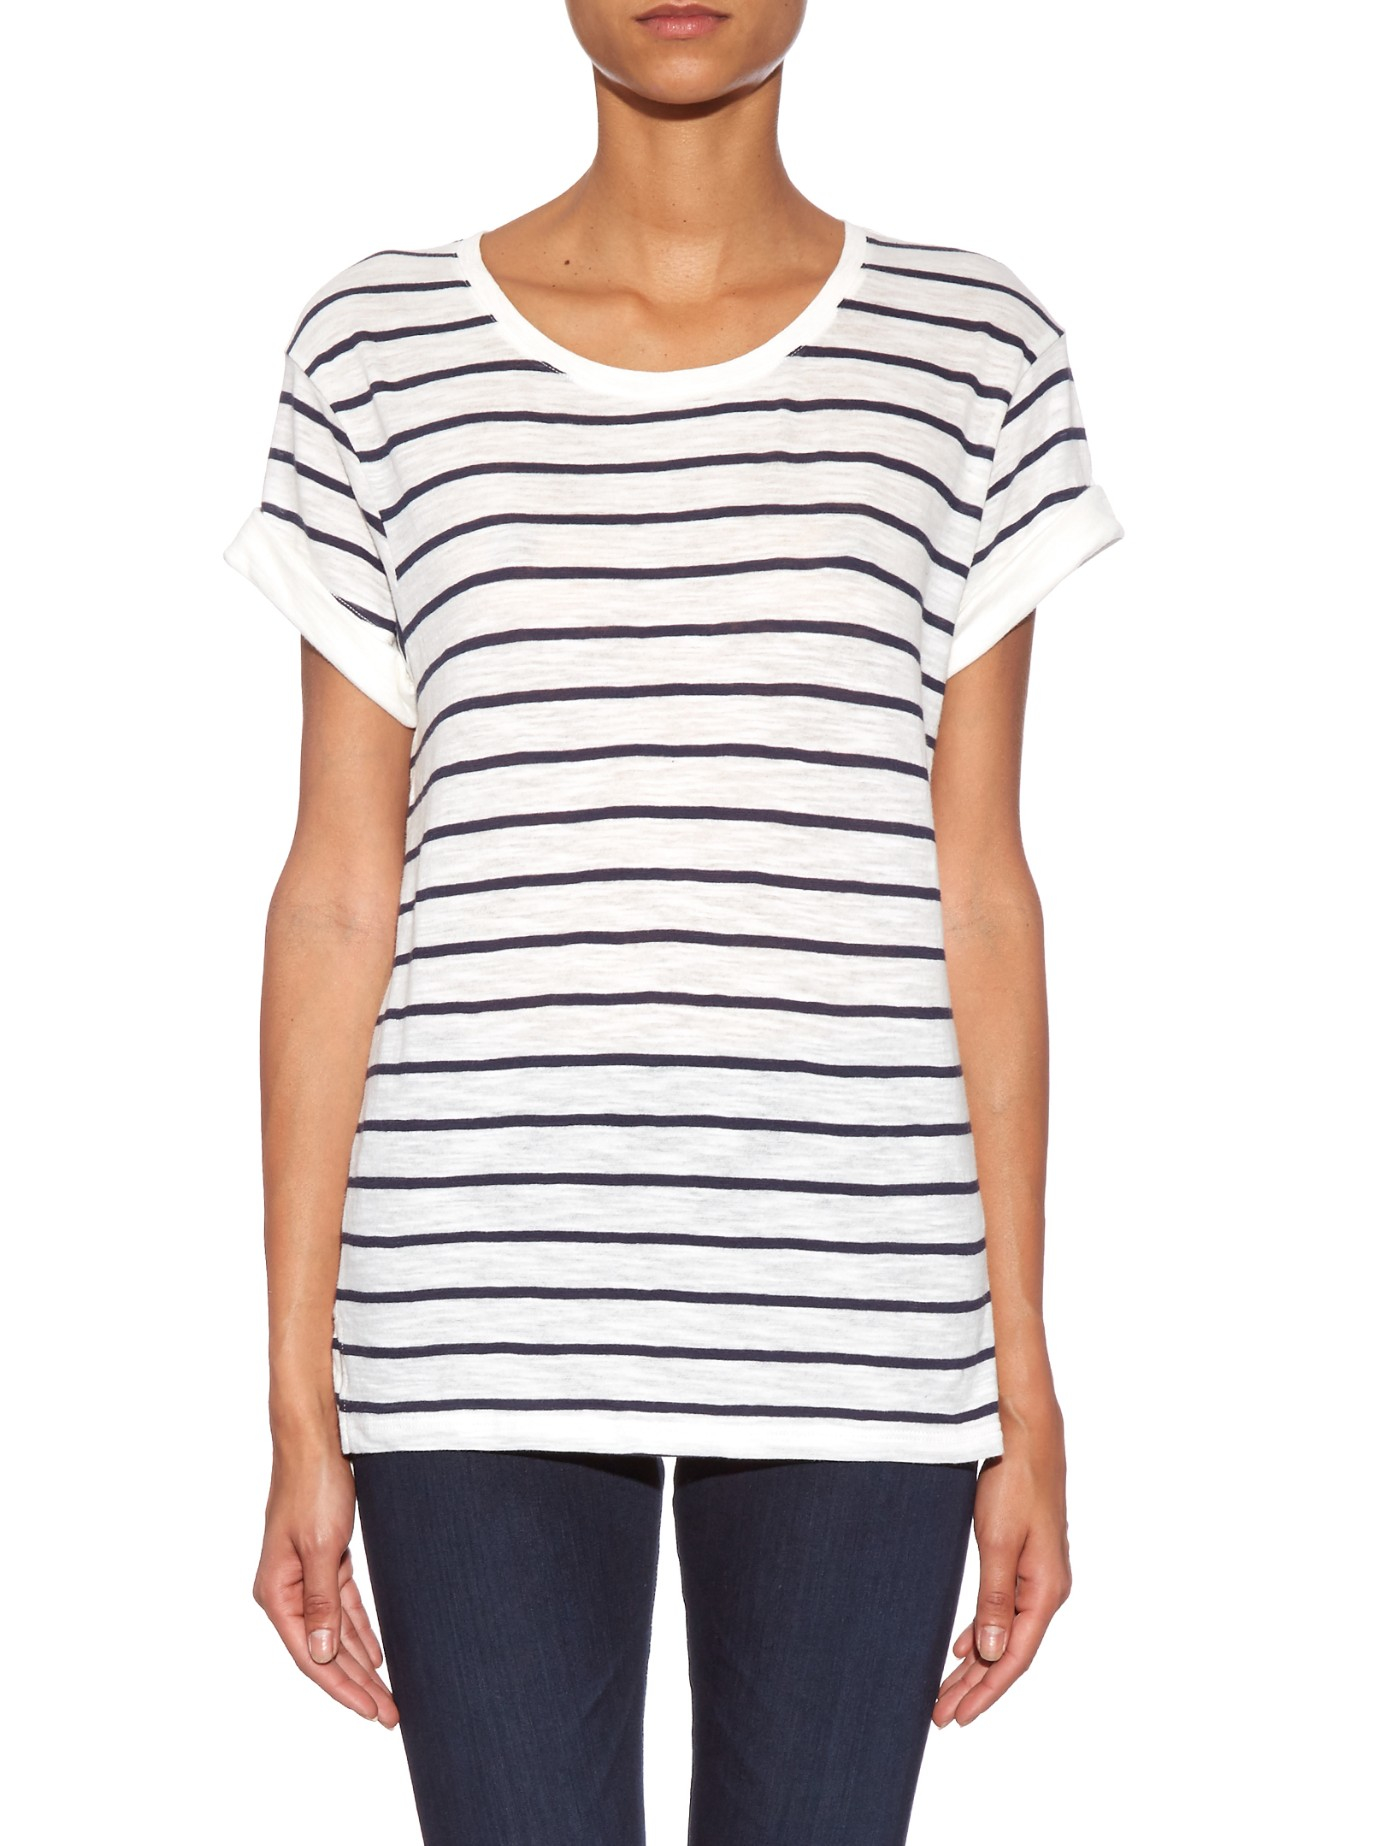 Vince striped short sleeved cotton t shirt in white lyst for Vince tee shirts sale